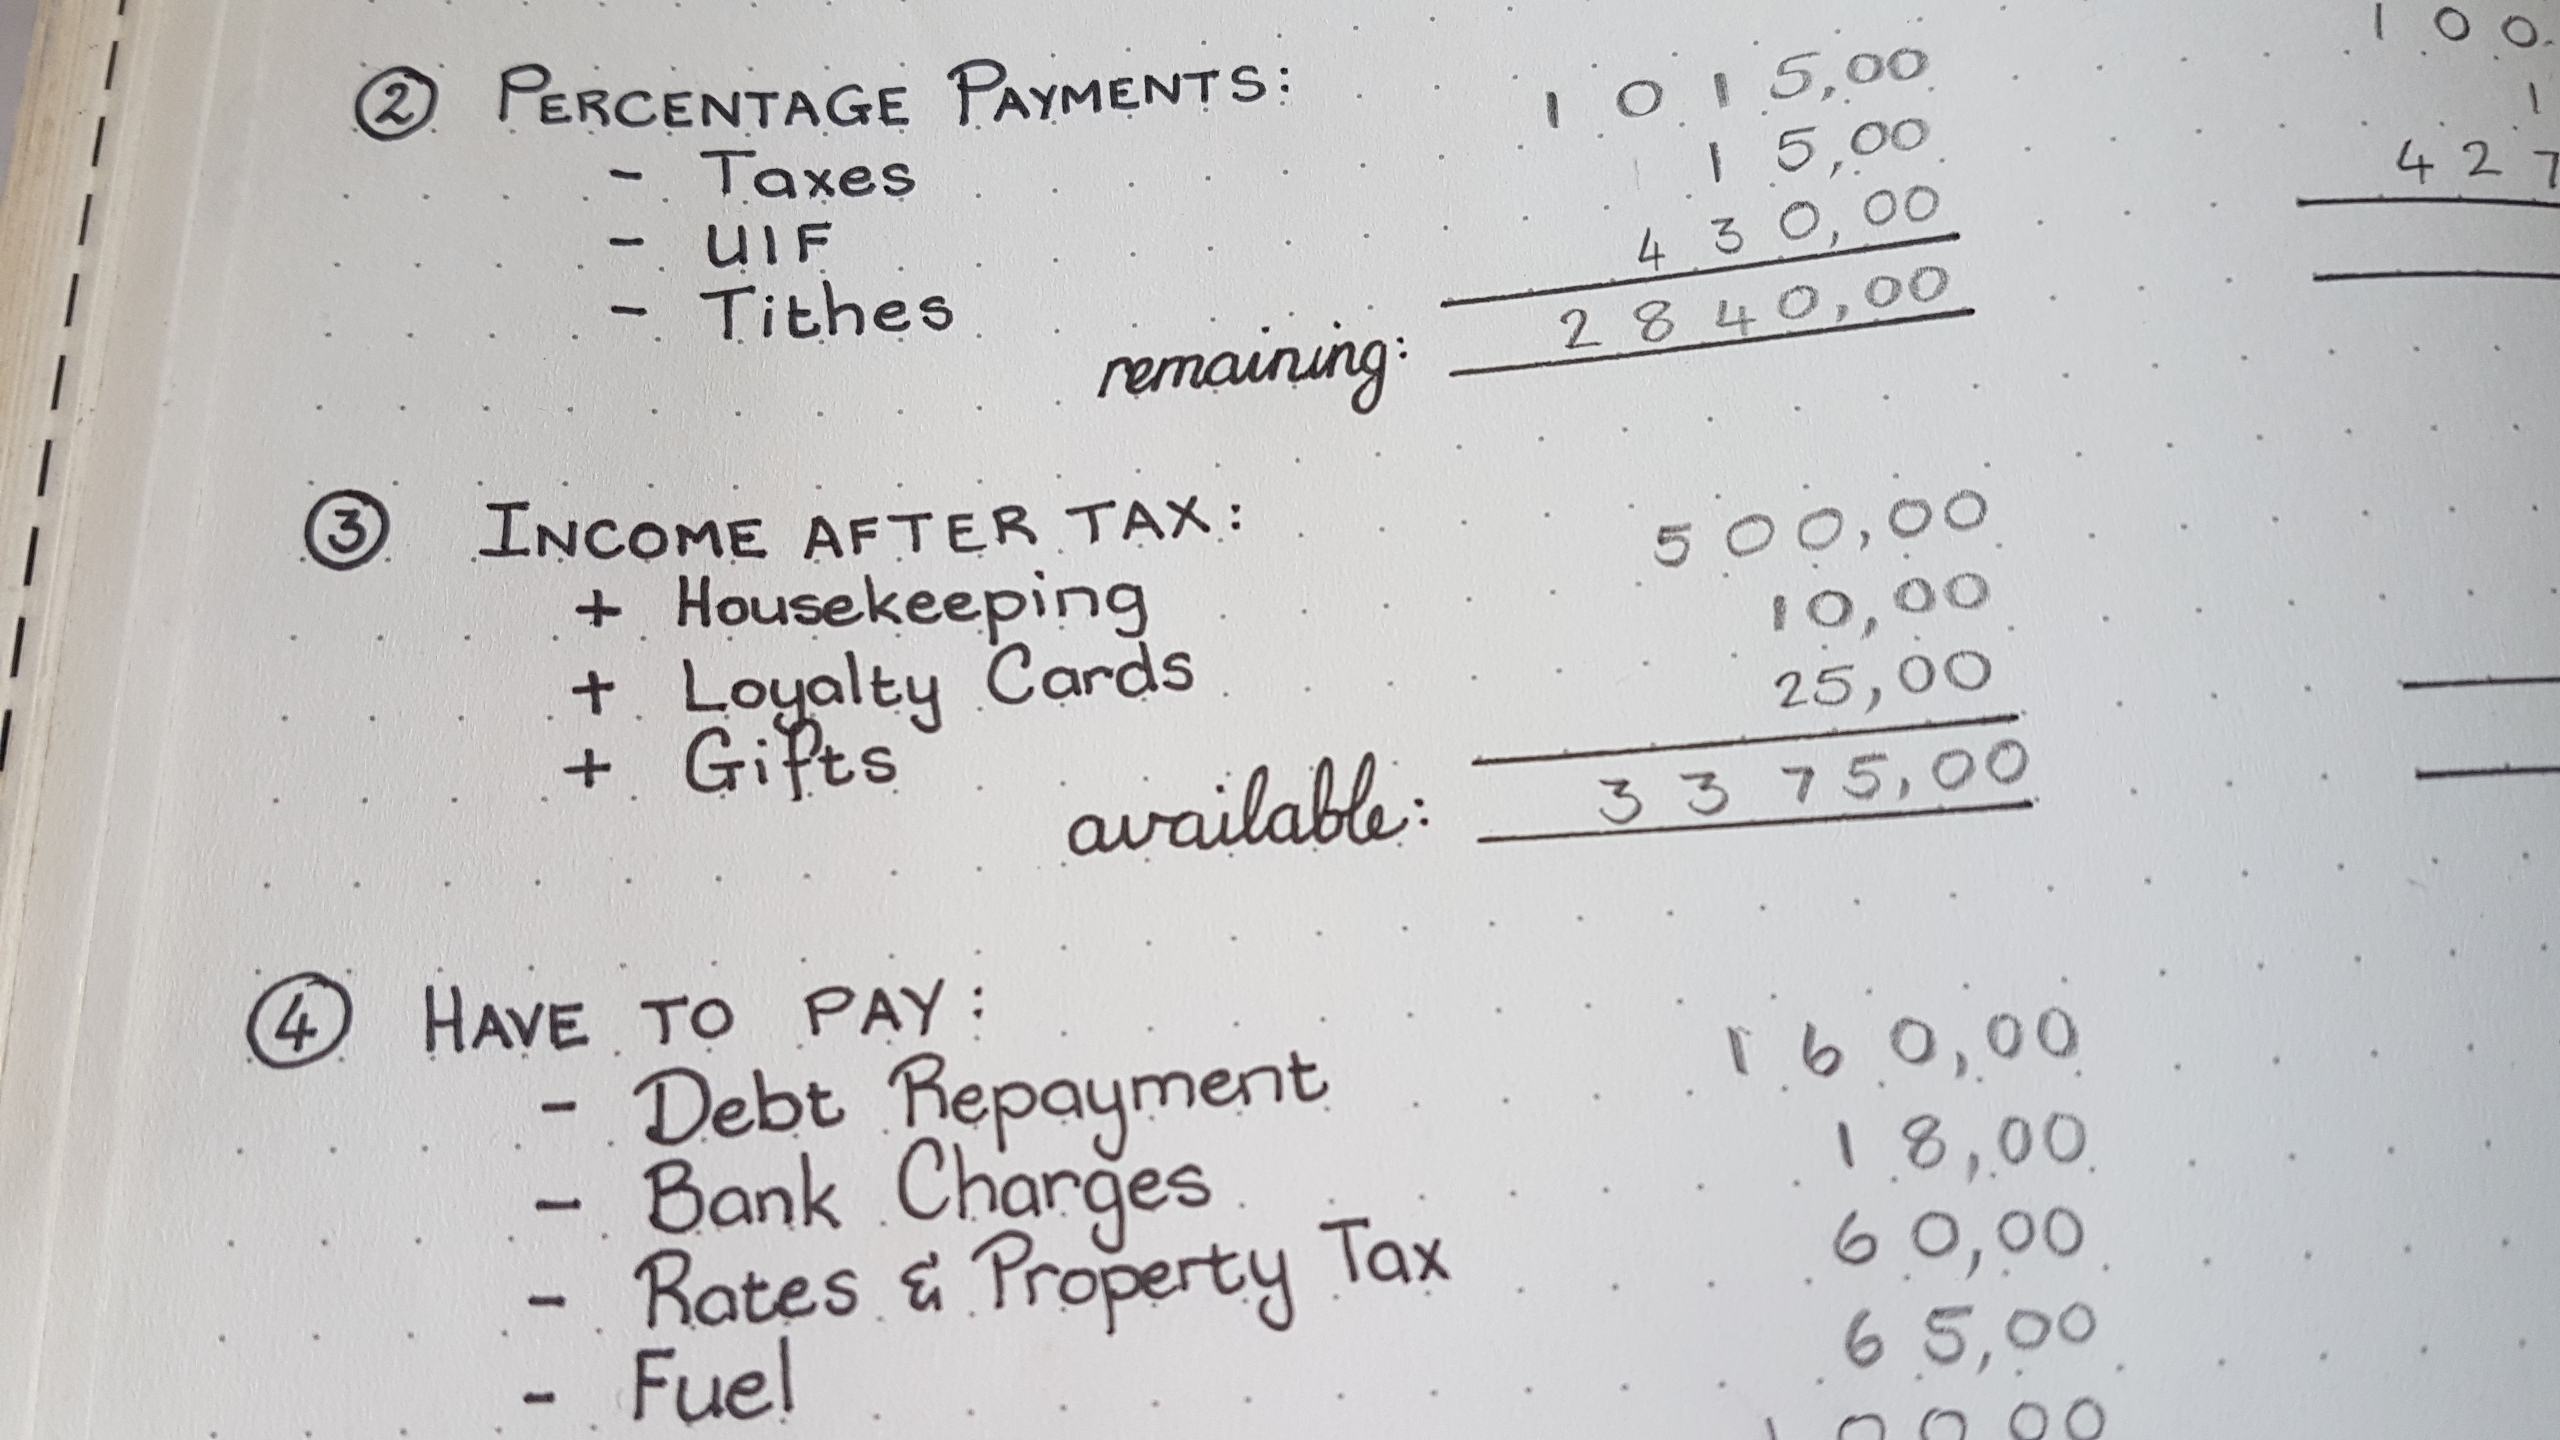 Monthly Personal Budget: Income after tax